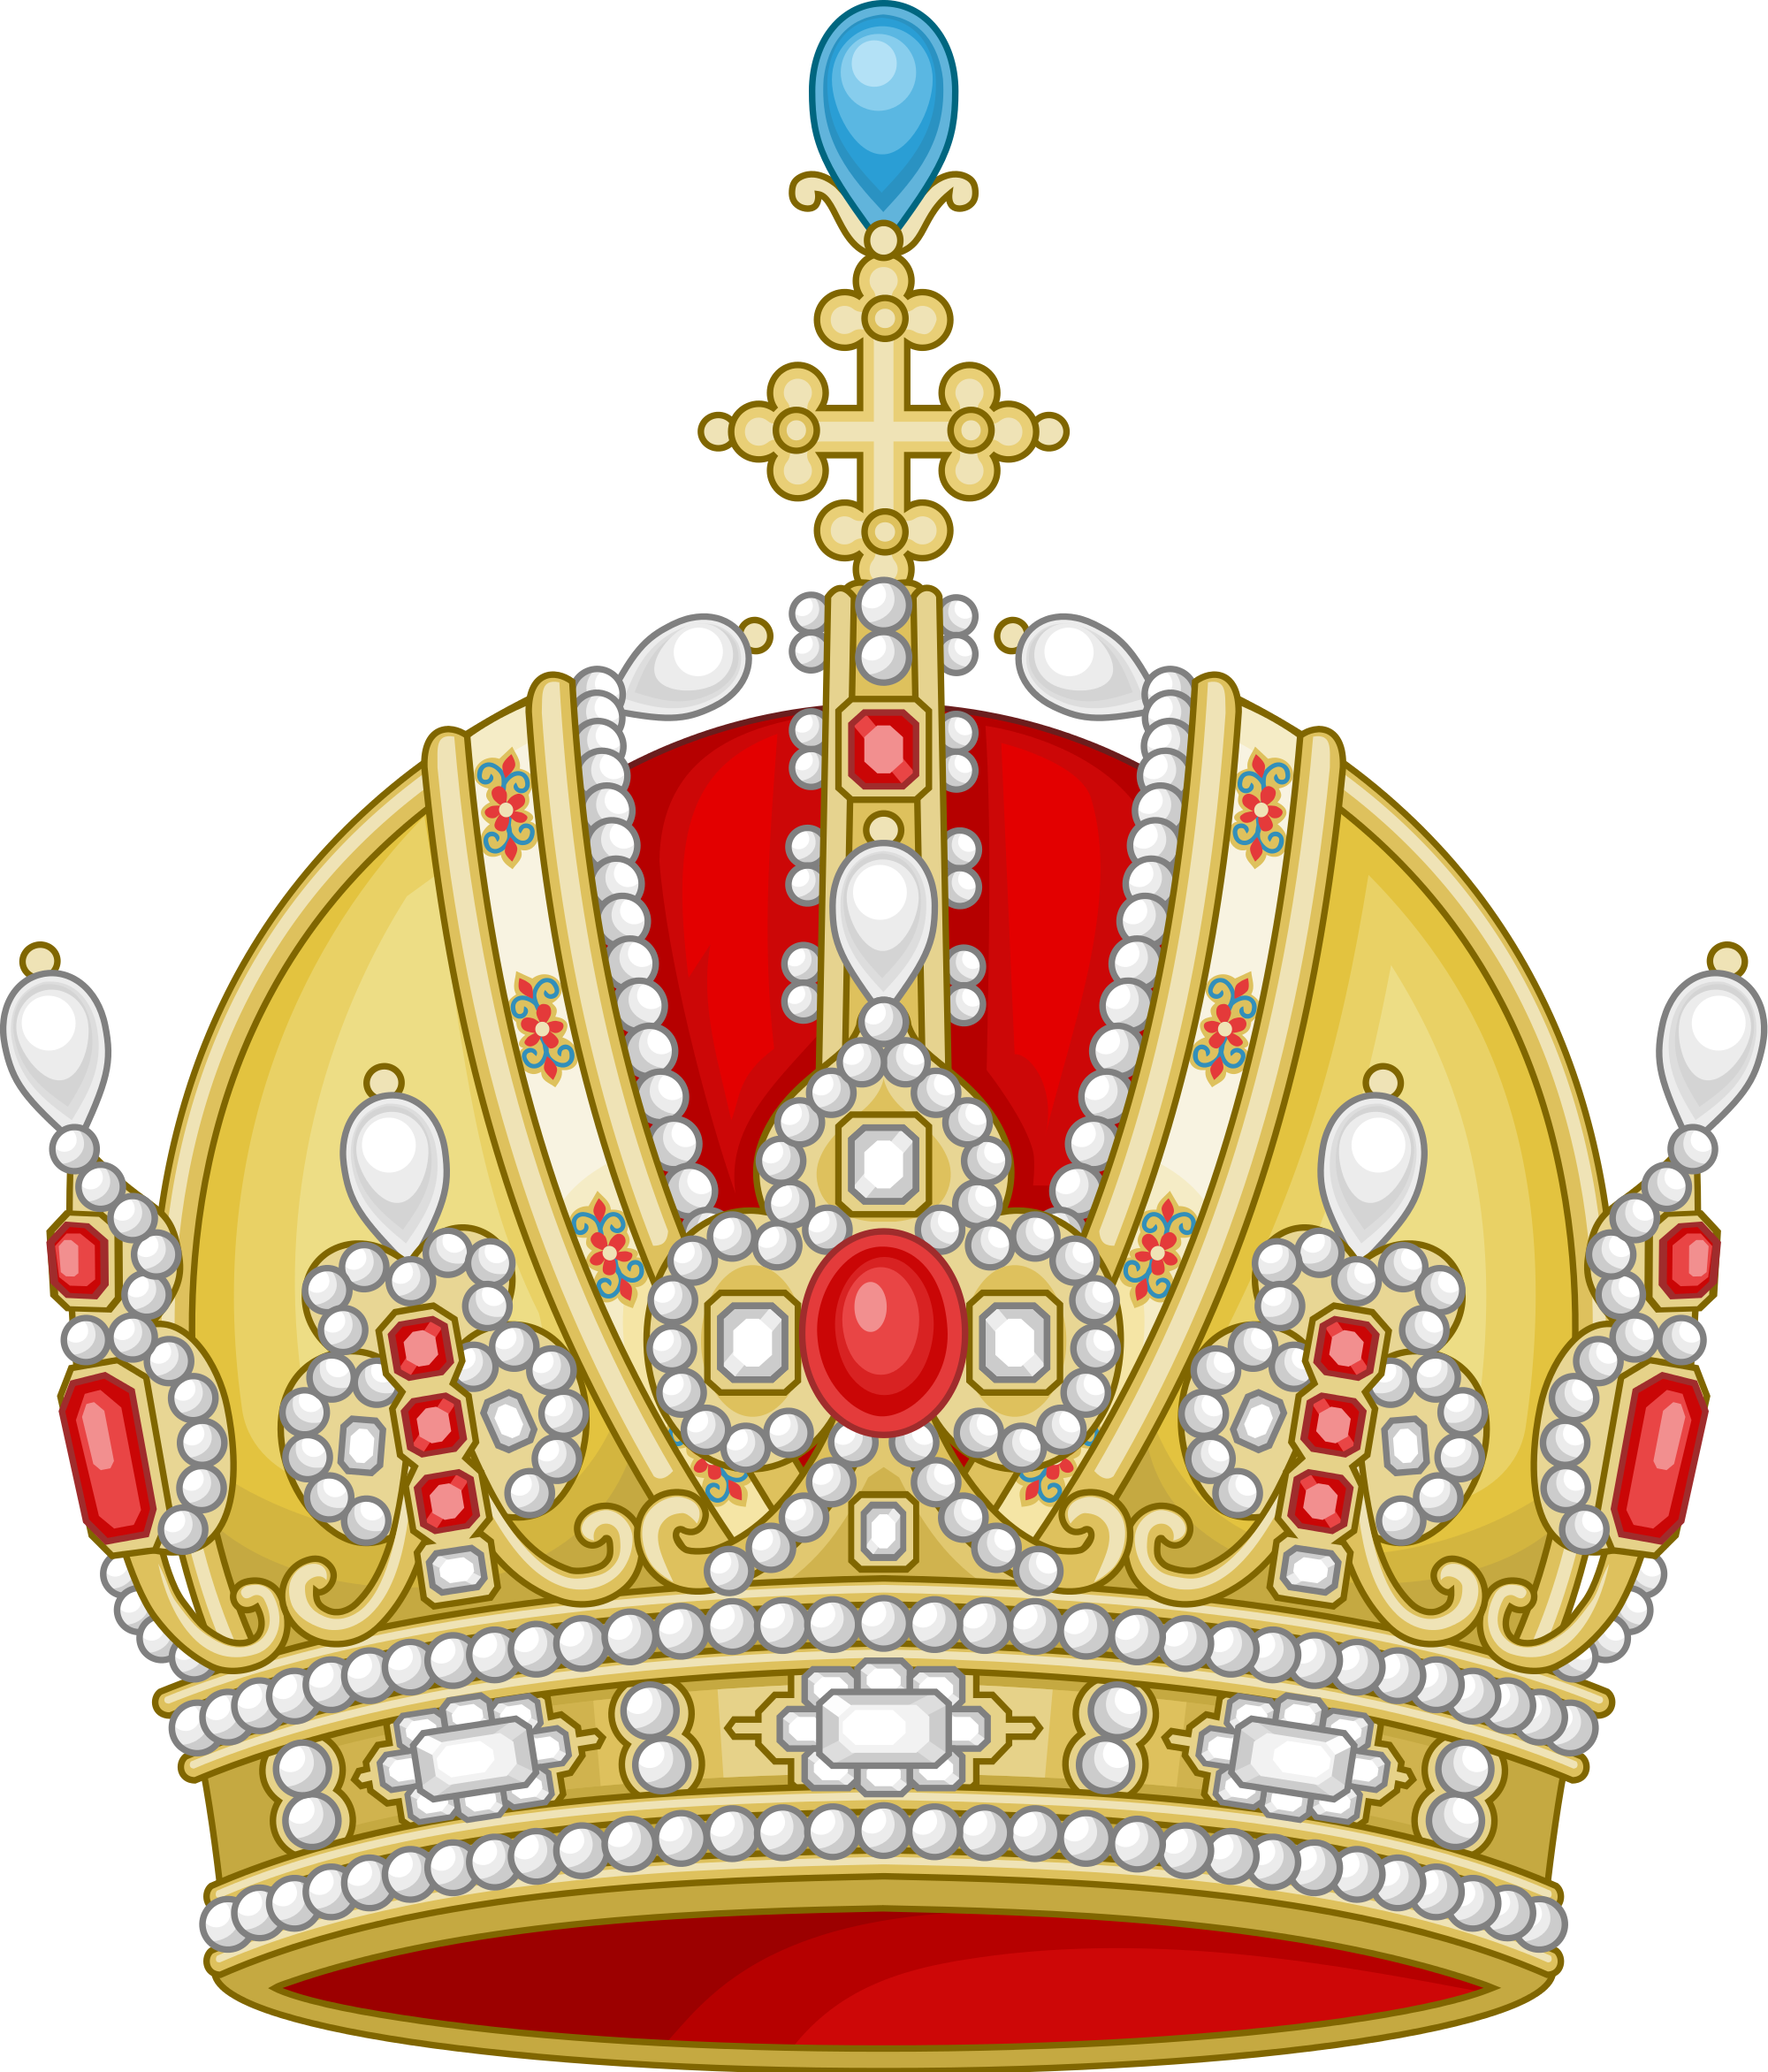 Medieval crown clipart image freeuse stock Crown Royal Clipart emperor crown - Free Clipart on Dumielauxepices.net image freeuse stock